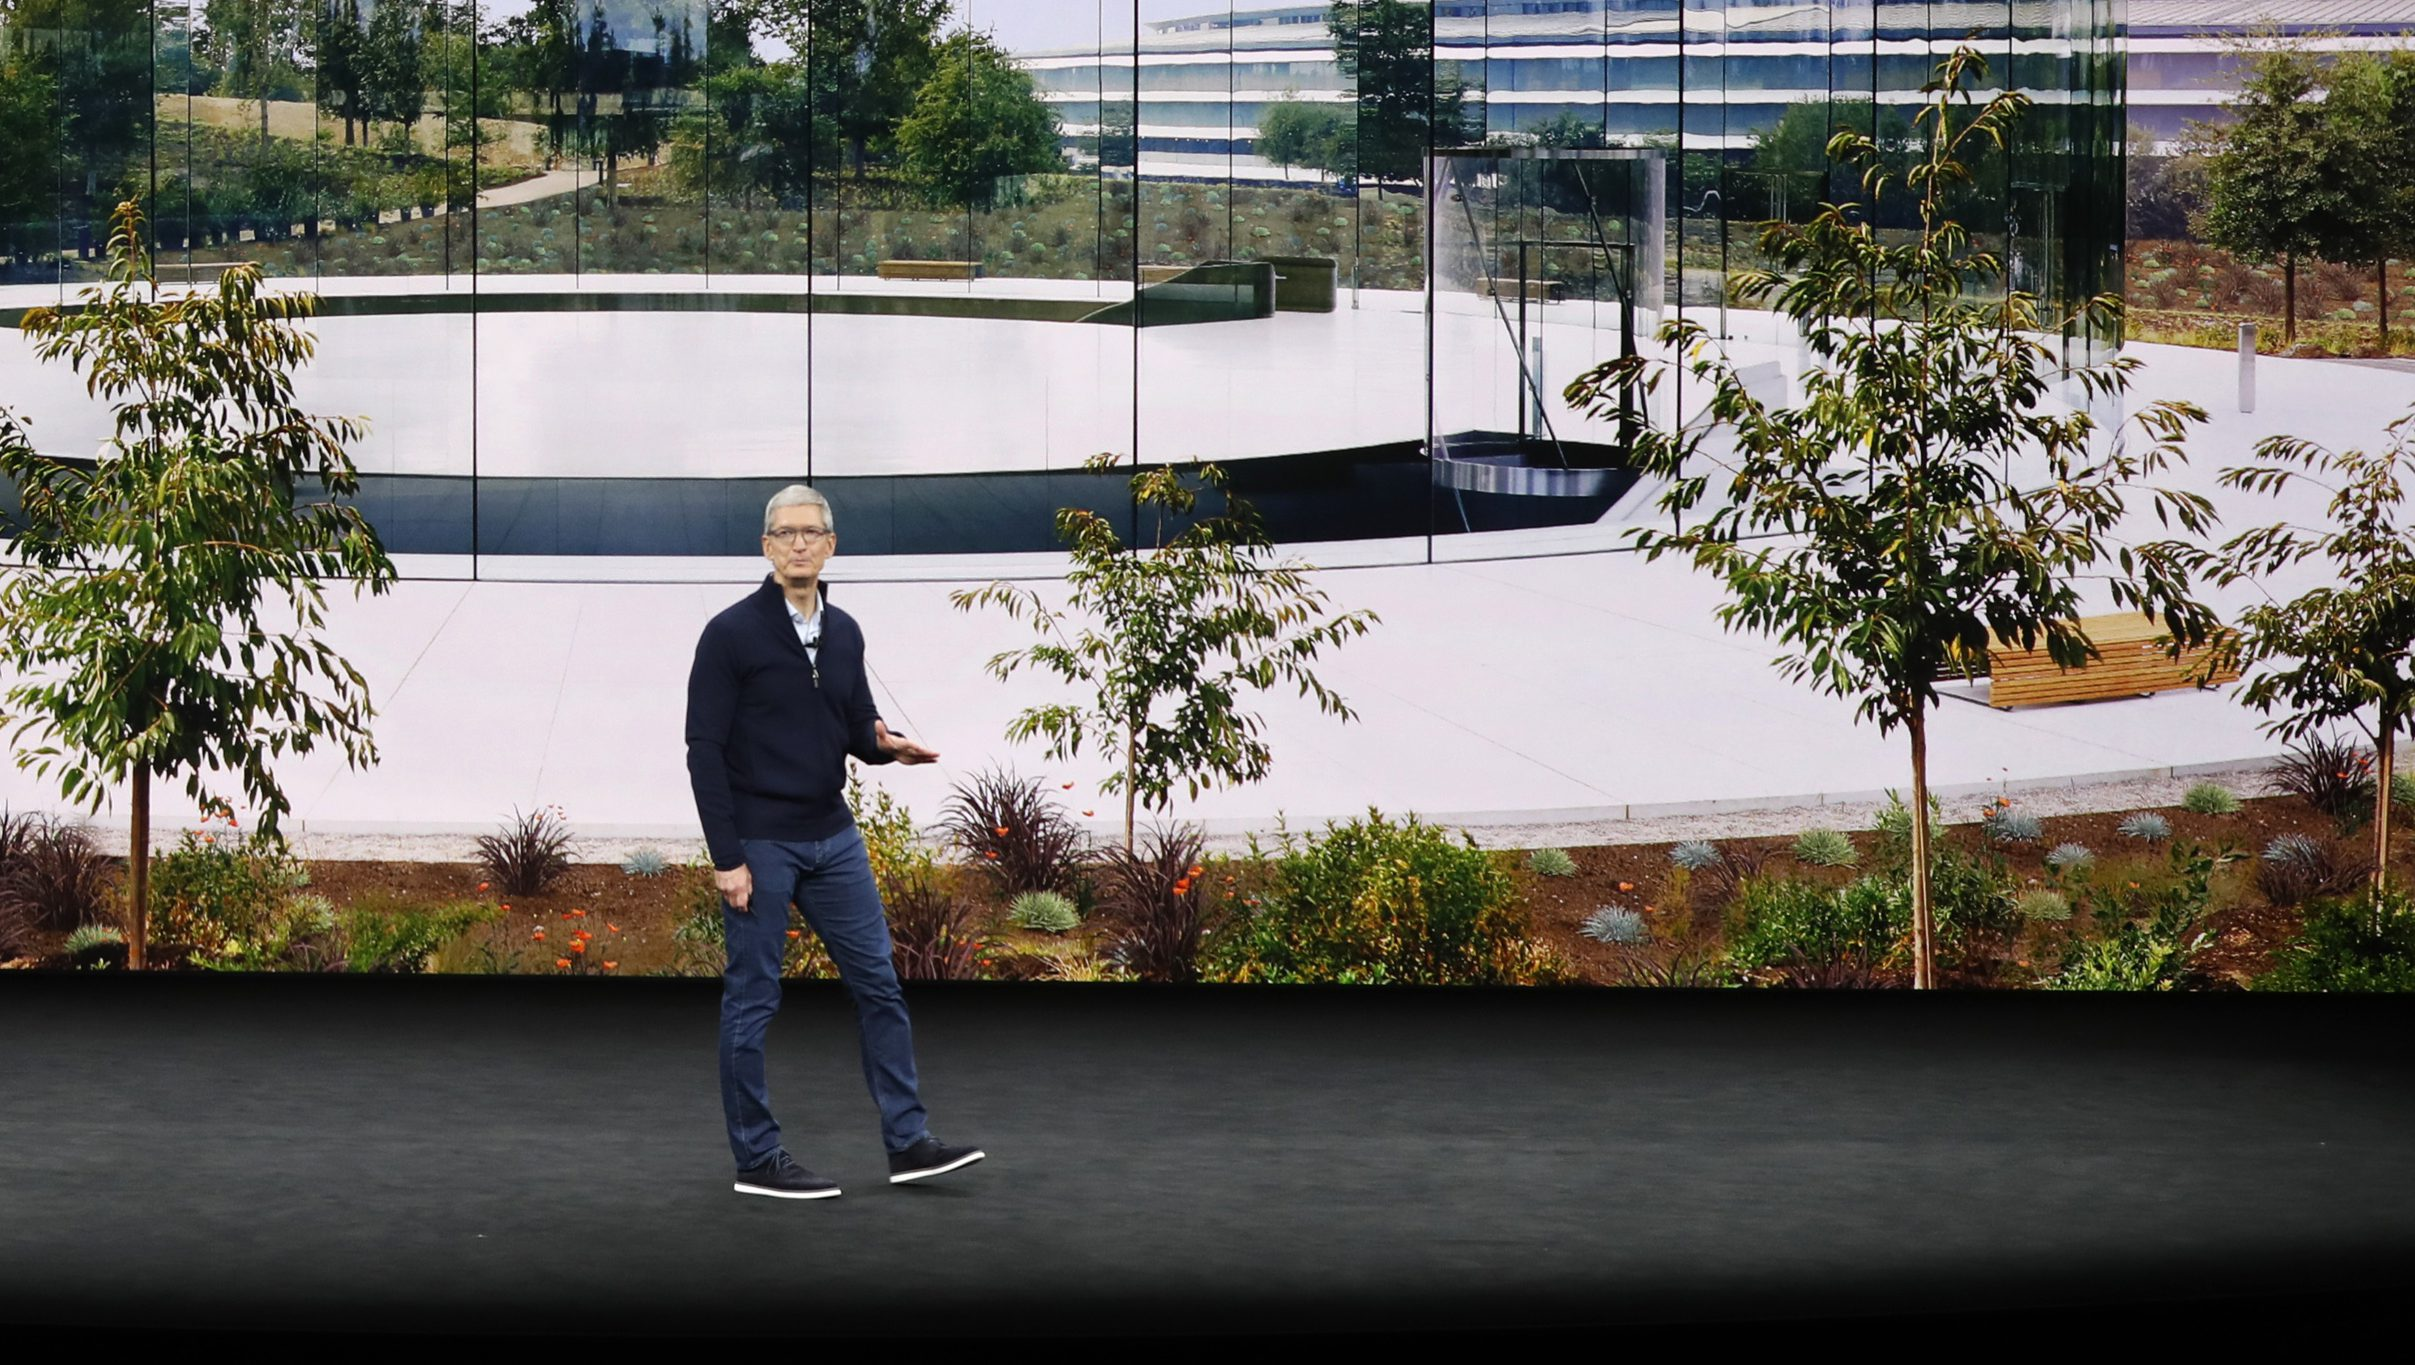 Tim Cook on stage in front of a photo of Apple Campus